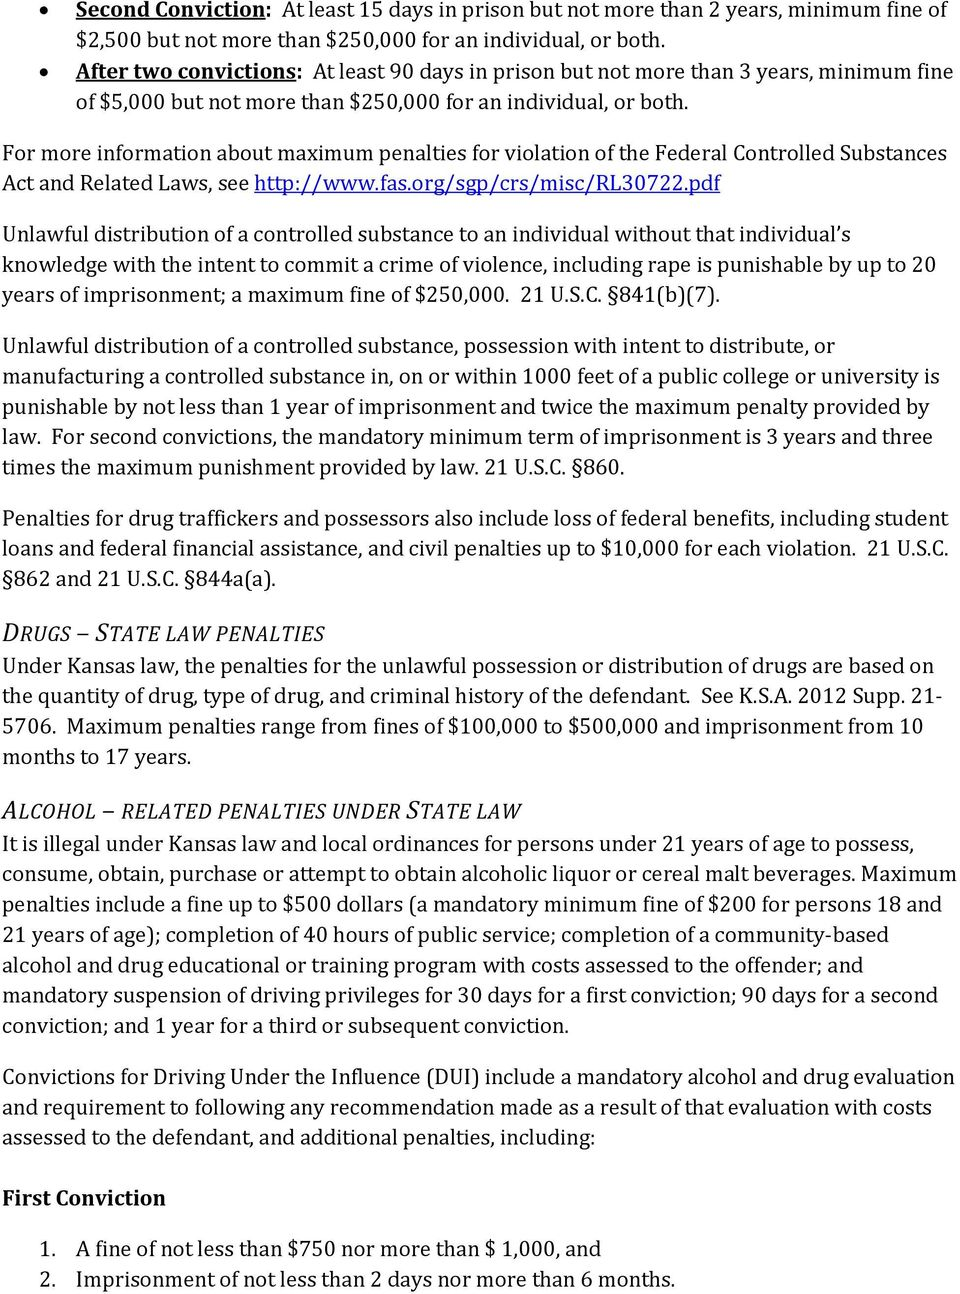 For more information about maximum penalties for violation of the Federal Controlled Substances Act and Related Laws, see http://www.fas.org/sgp/crs/misc/rl30722.